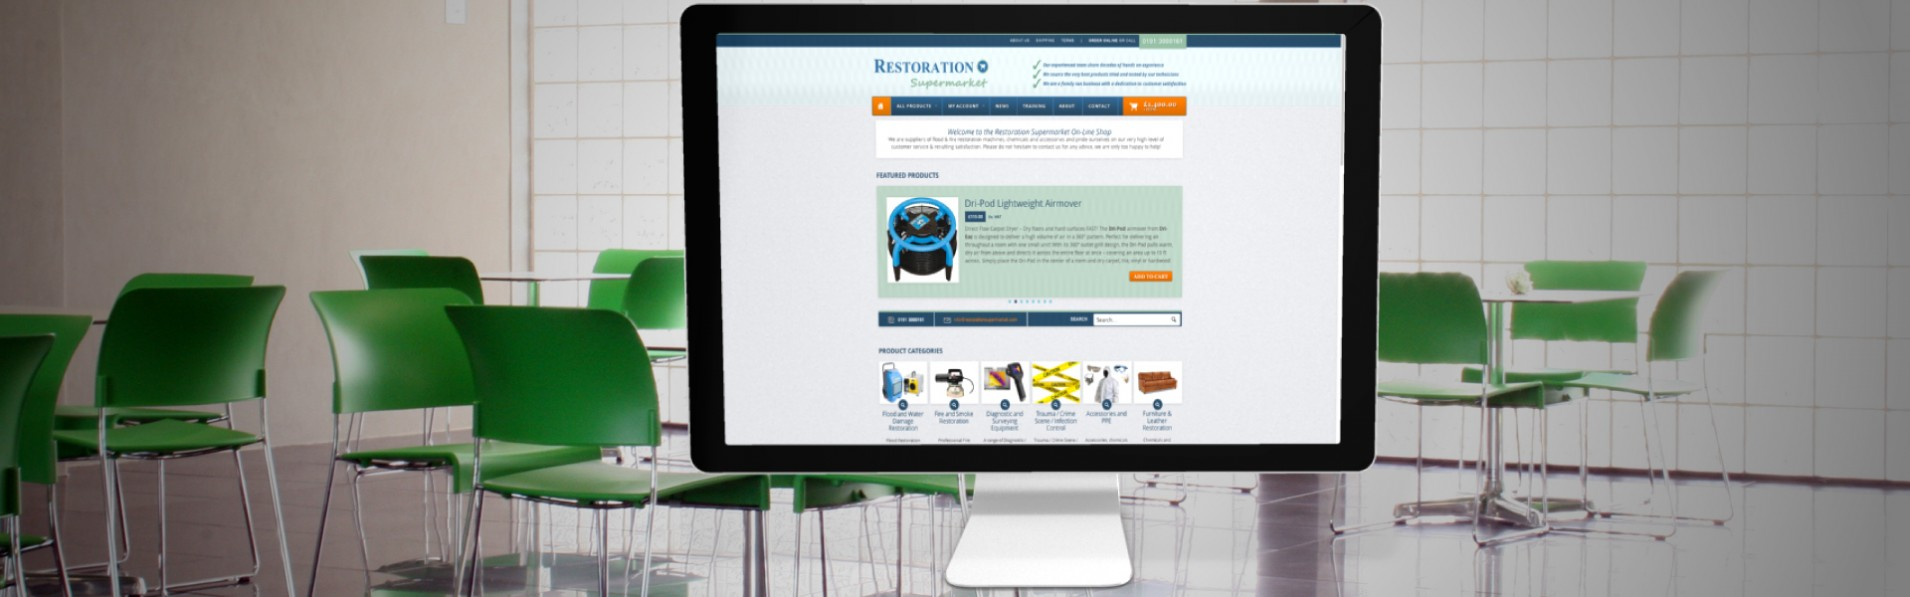 portfolio new1RSM11 - E-commerce webdesign for cleaning equipment supplier